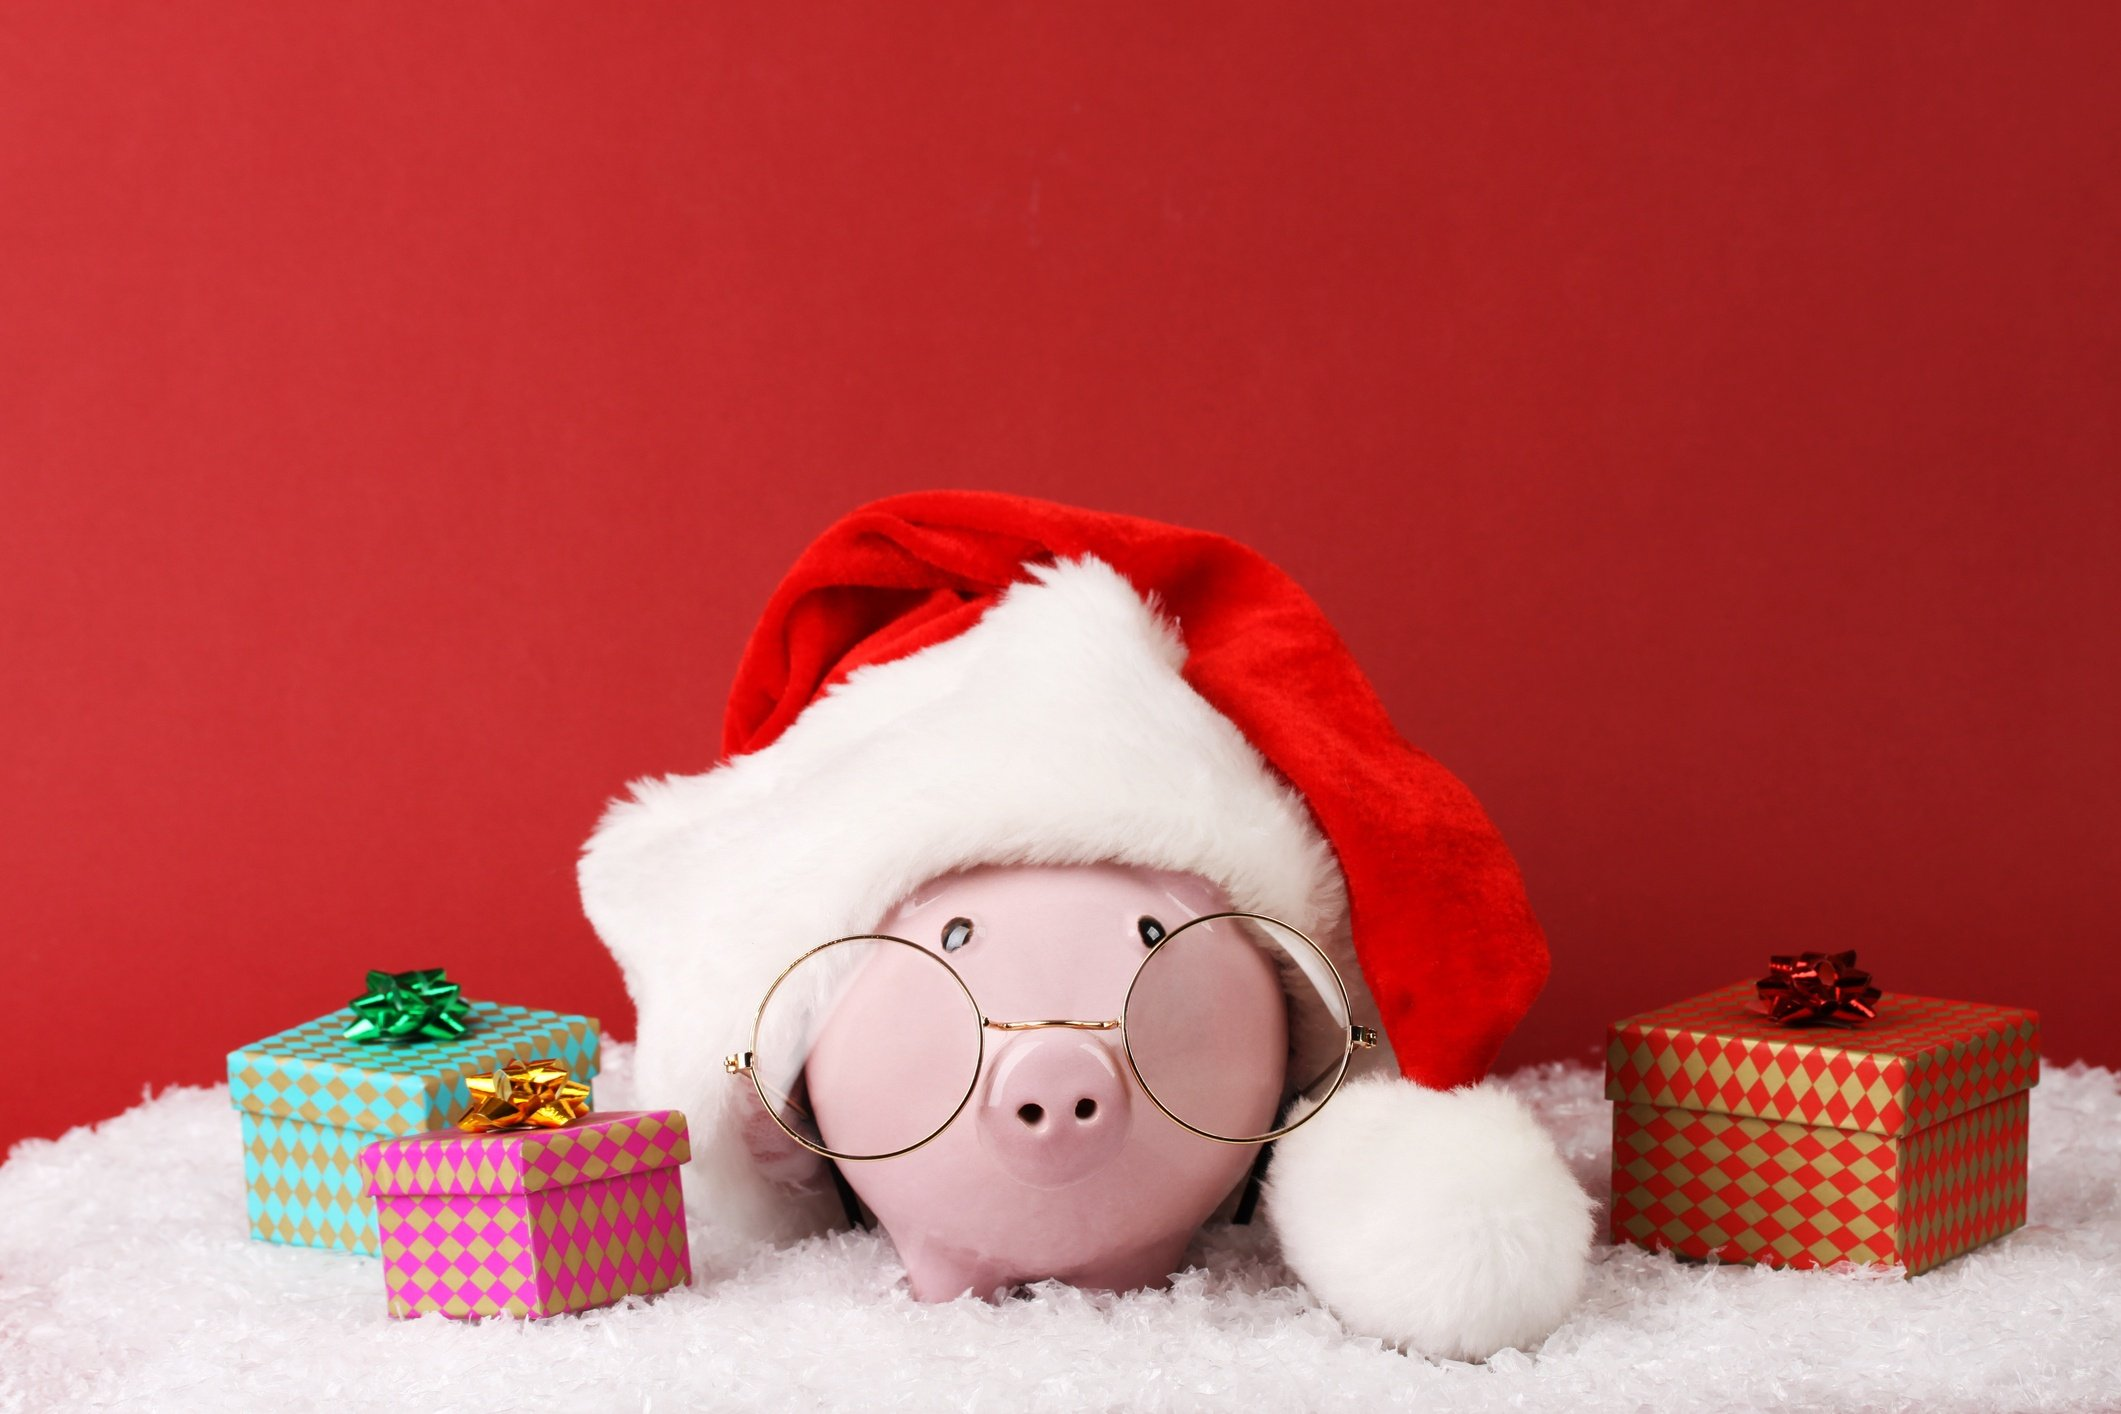 Staying on budget this holiday season